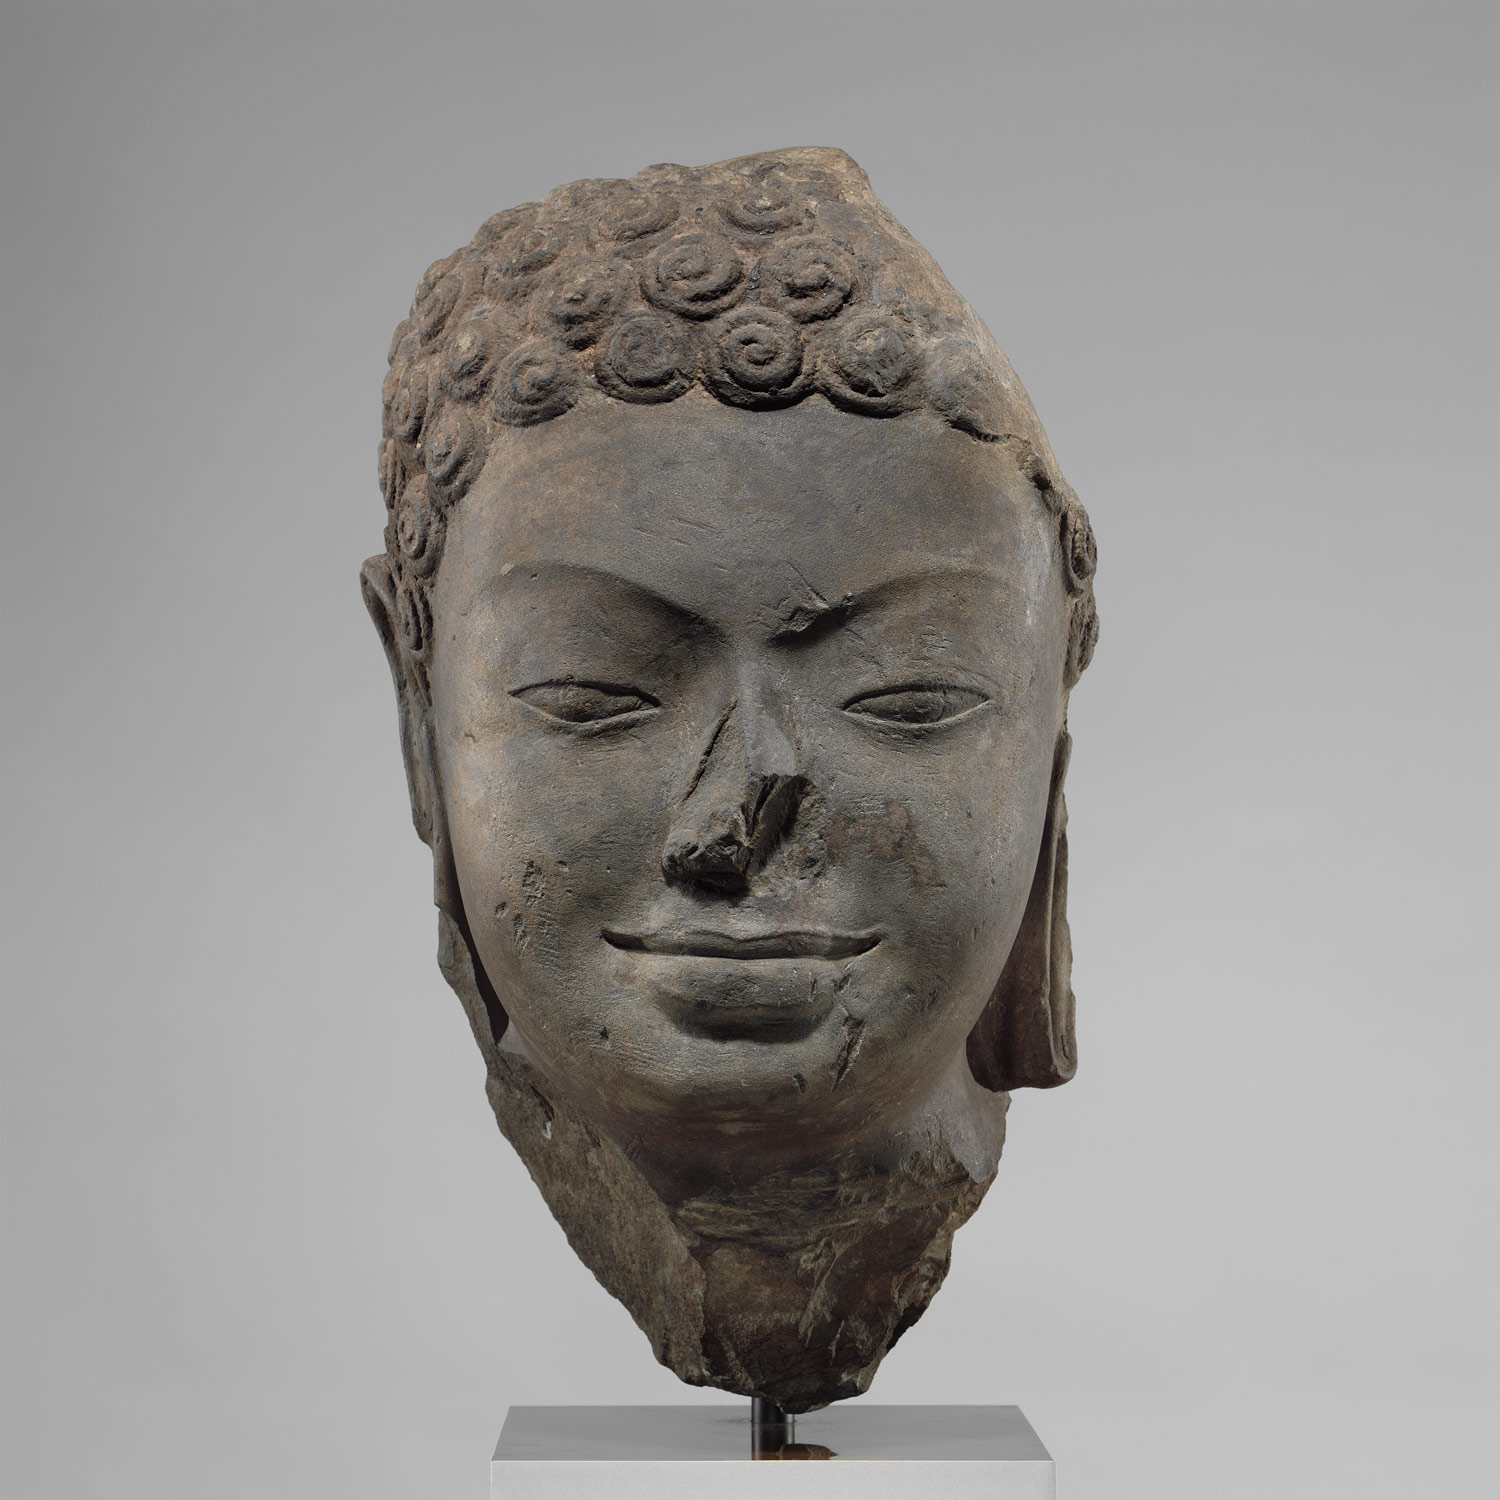 Head of Buddha